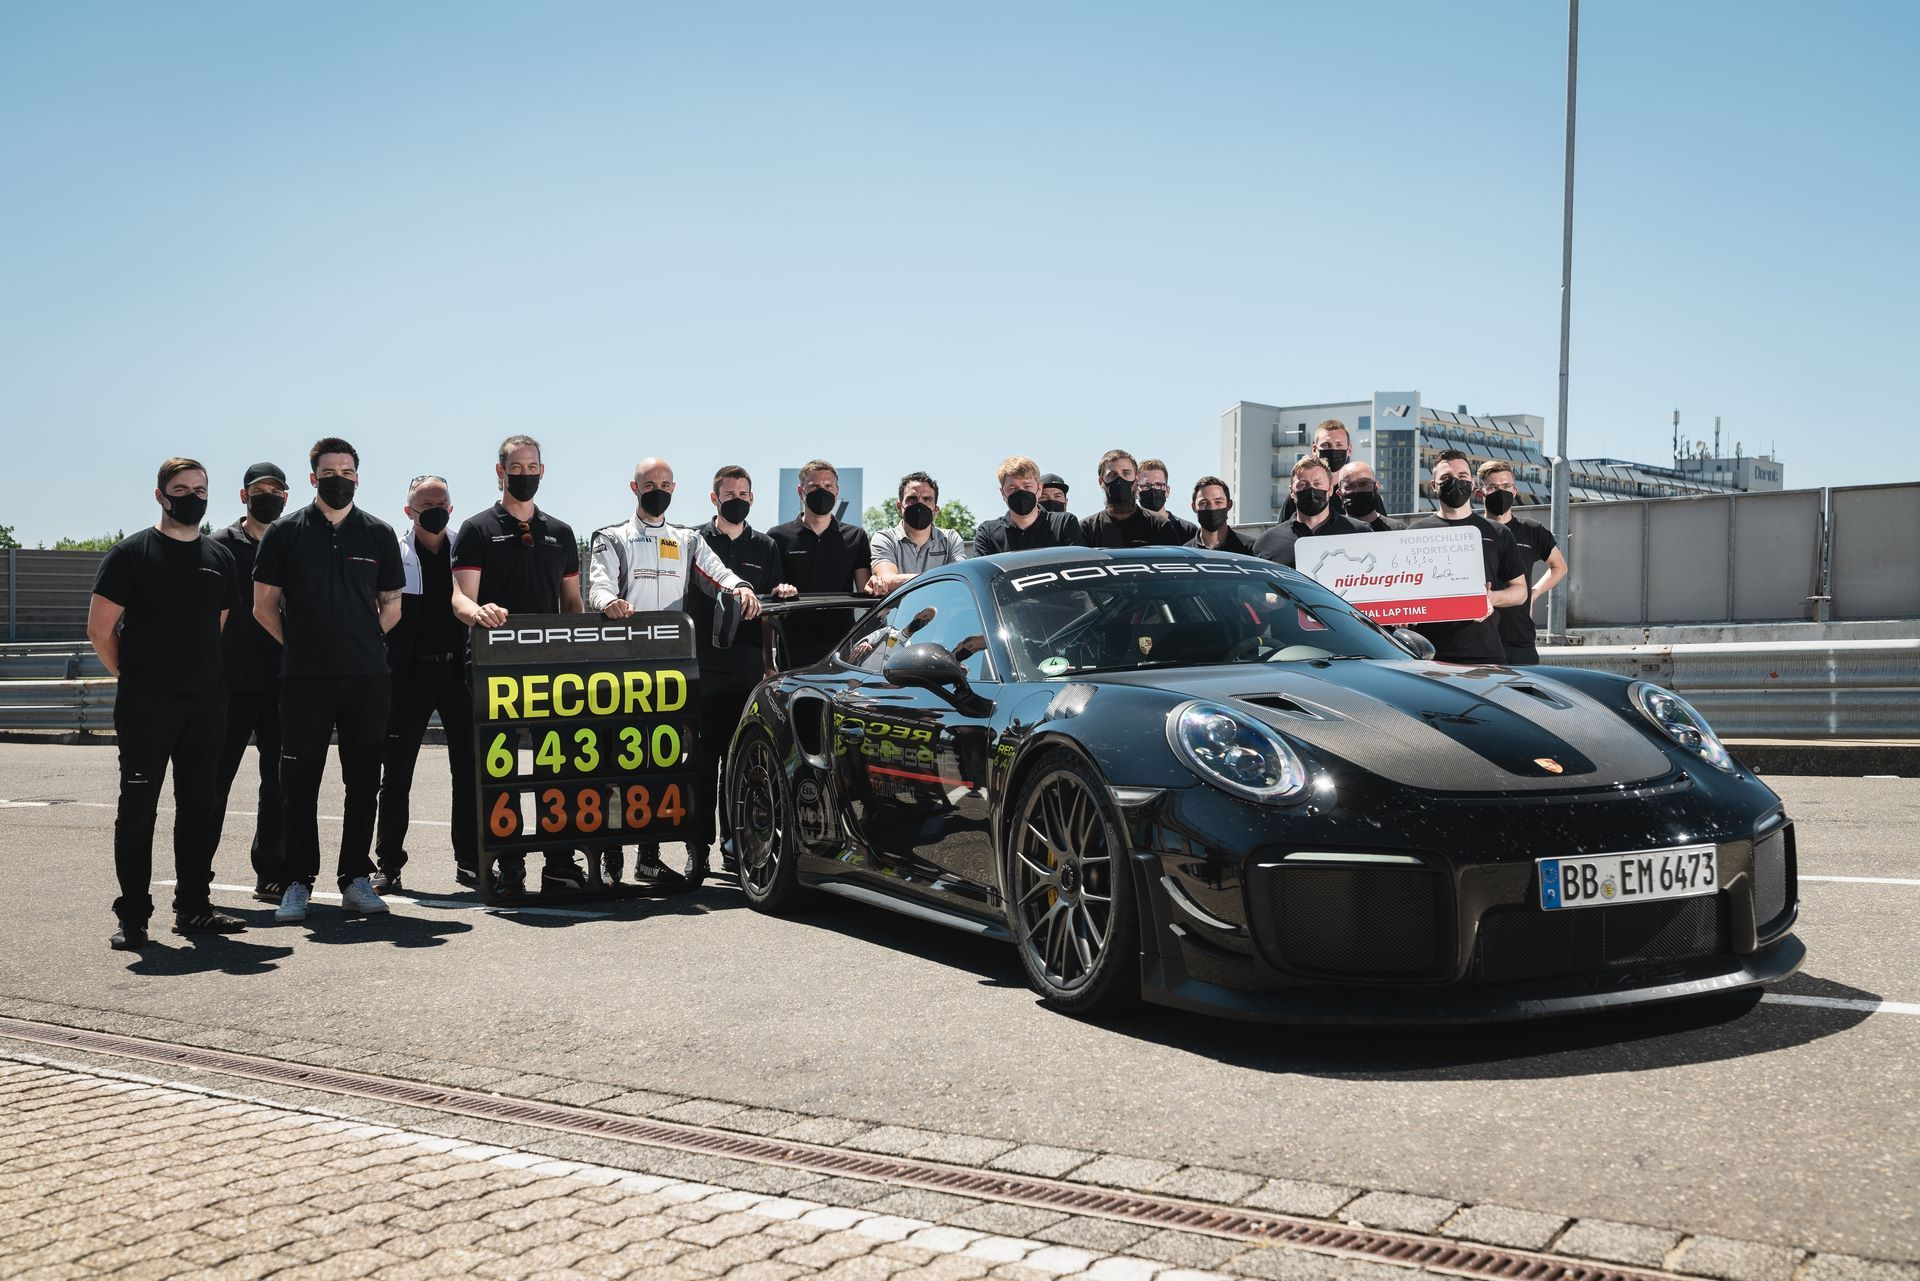 Porsche-911-GT2-RS-Manthey-Performance-Kit-Nurburgring-Record-9